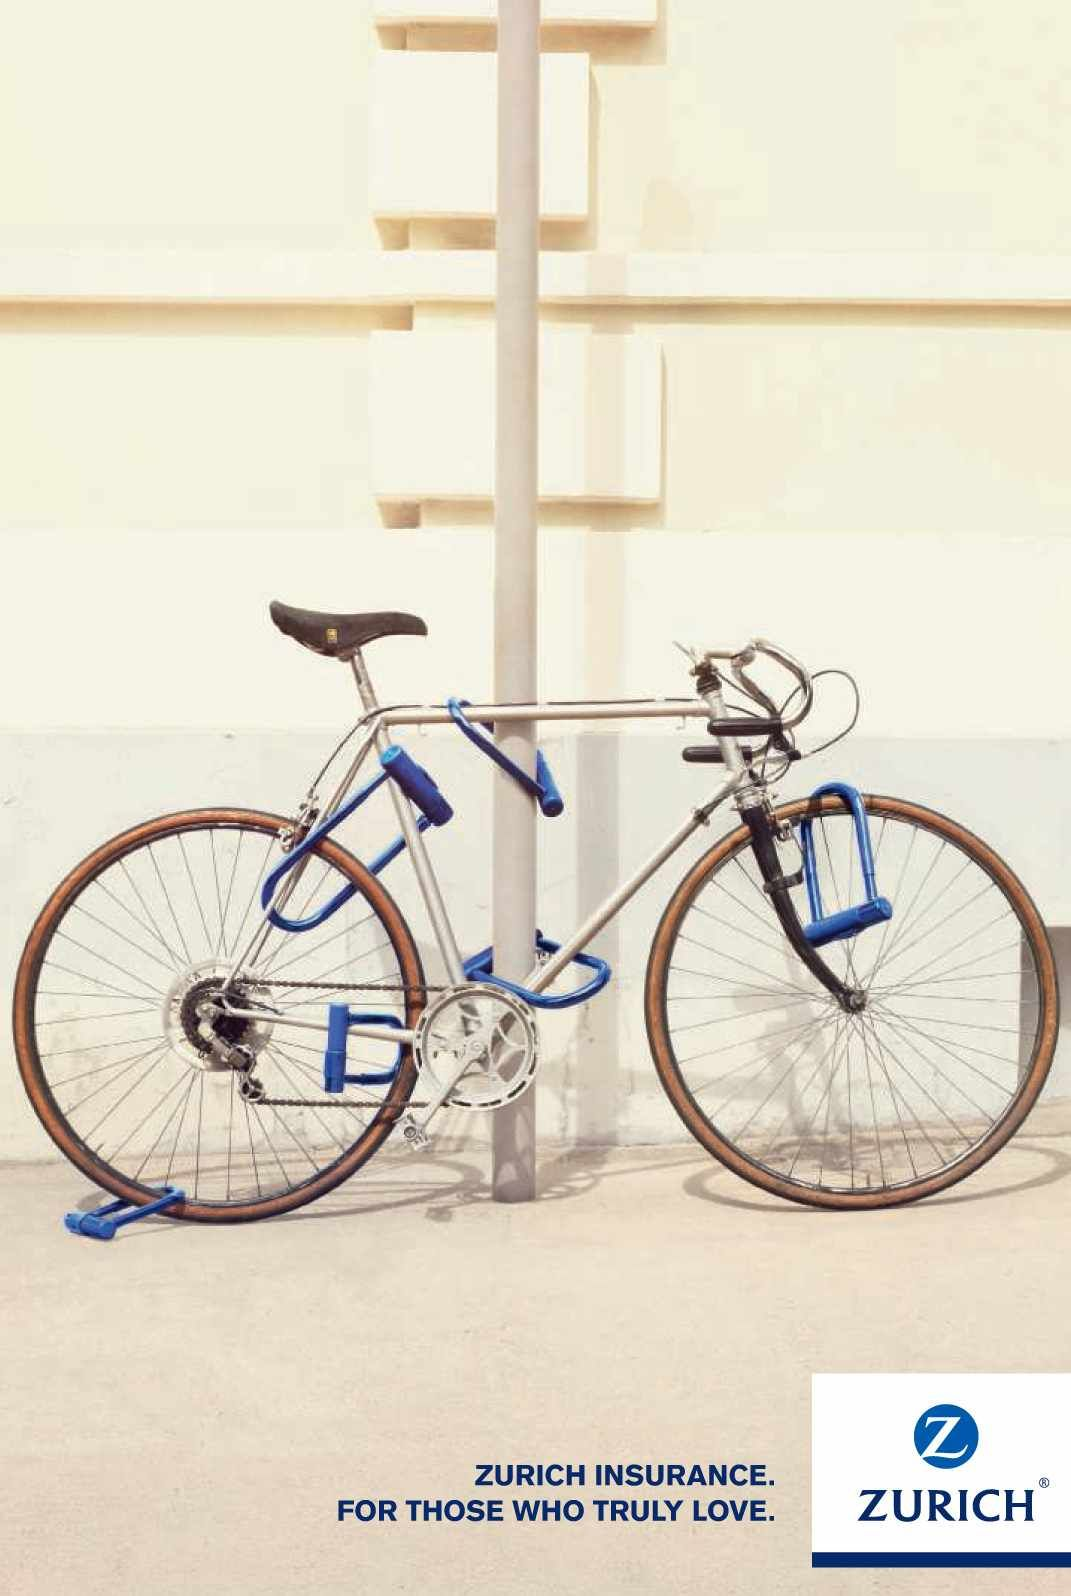 Zurich Insurance Company Bike For Those Who Truly Love